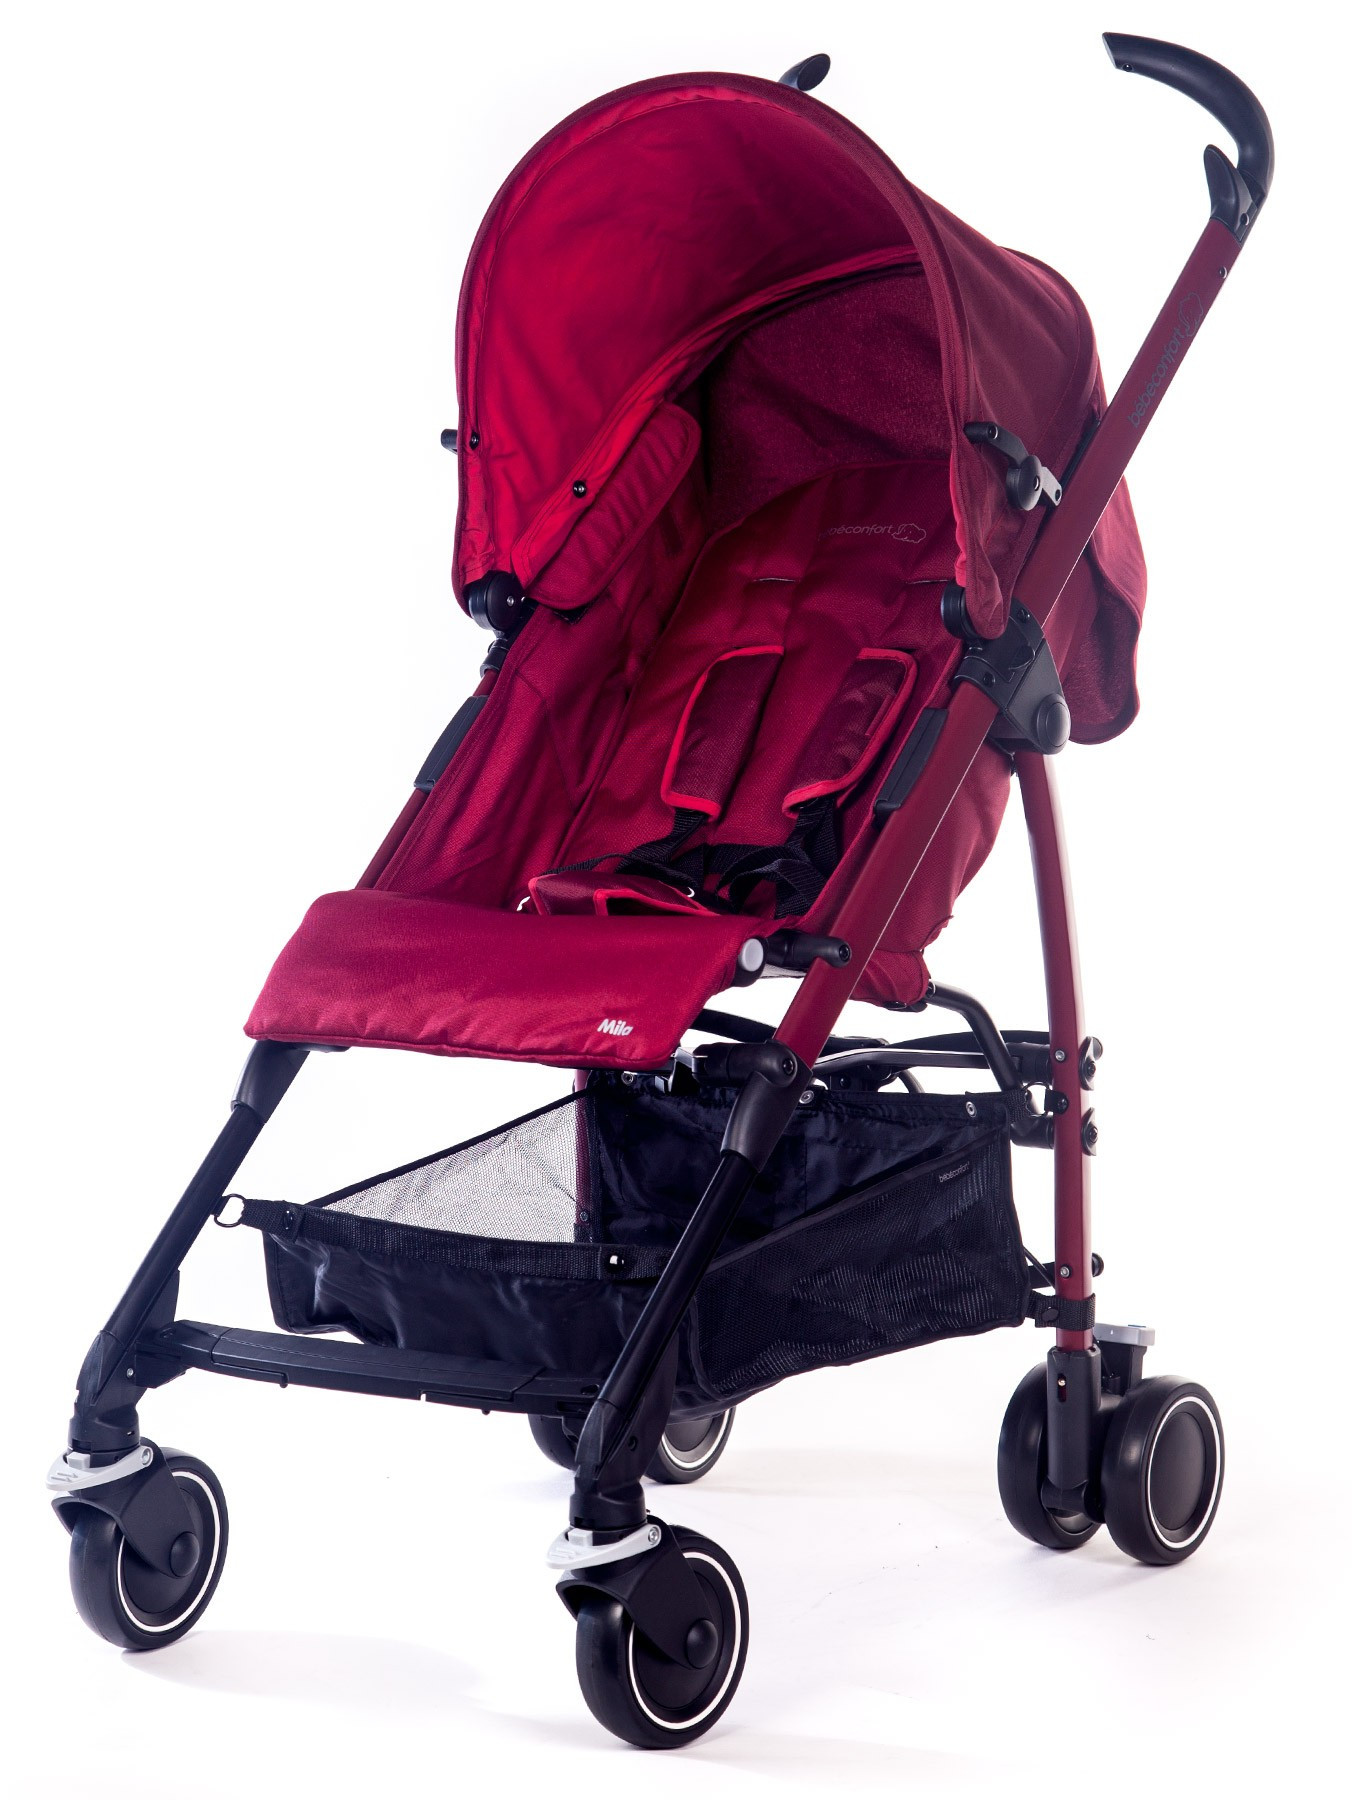 Silla paseo bebe confort 48889 silla ideas for Silla jane rocket